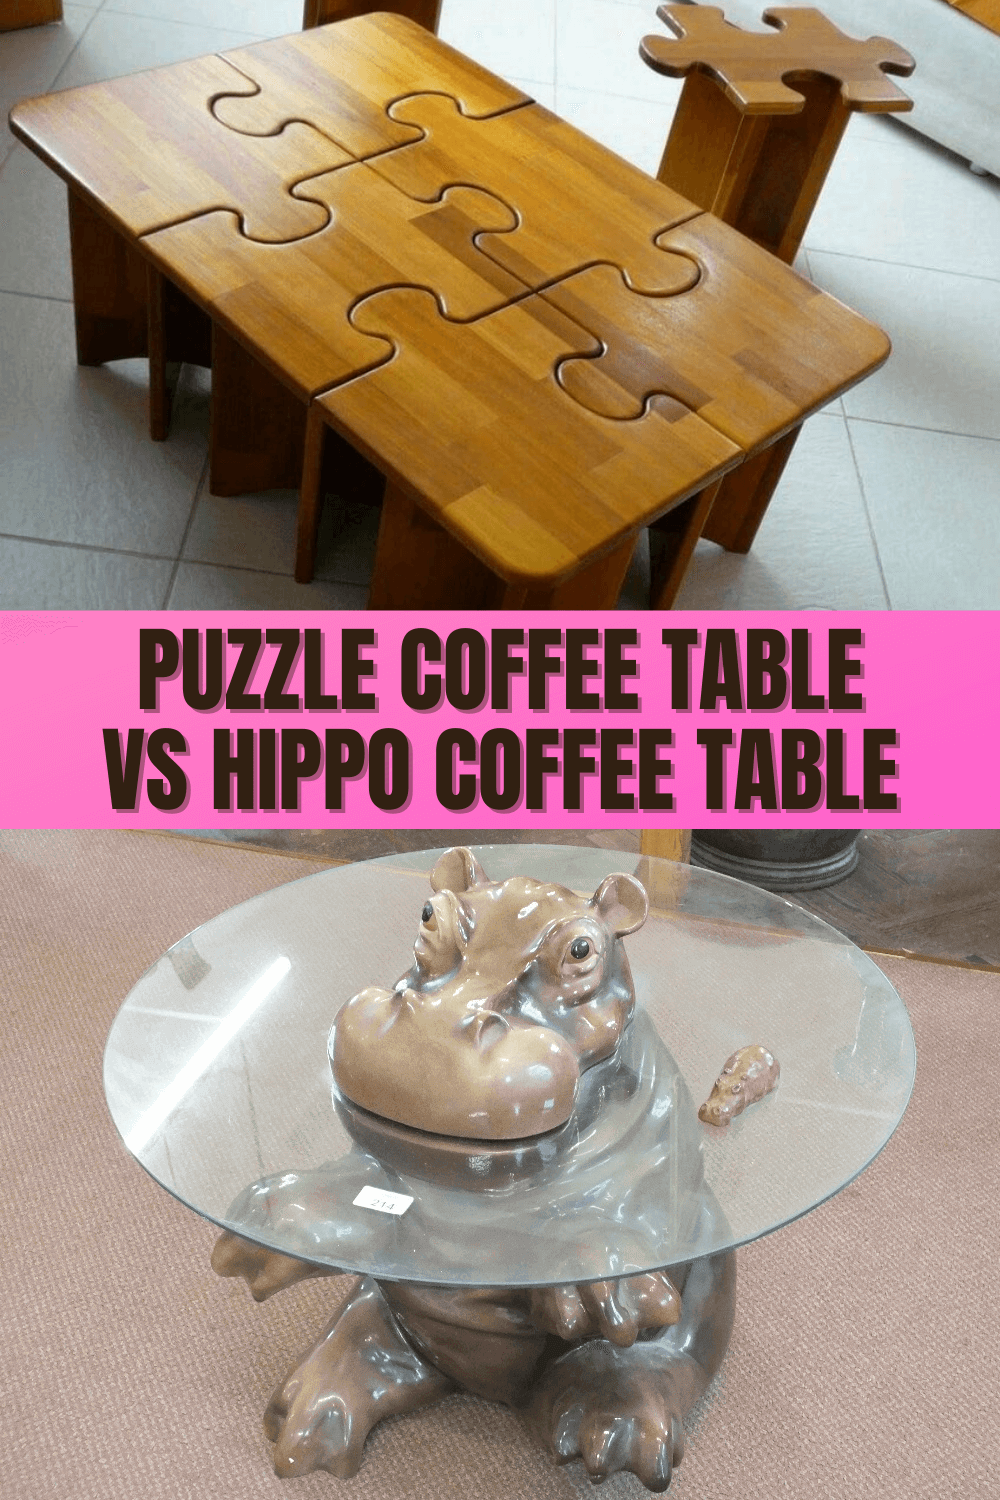 PUZZLE COFFEE TABLE VS HIPPO COFFEE TABLE